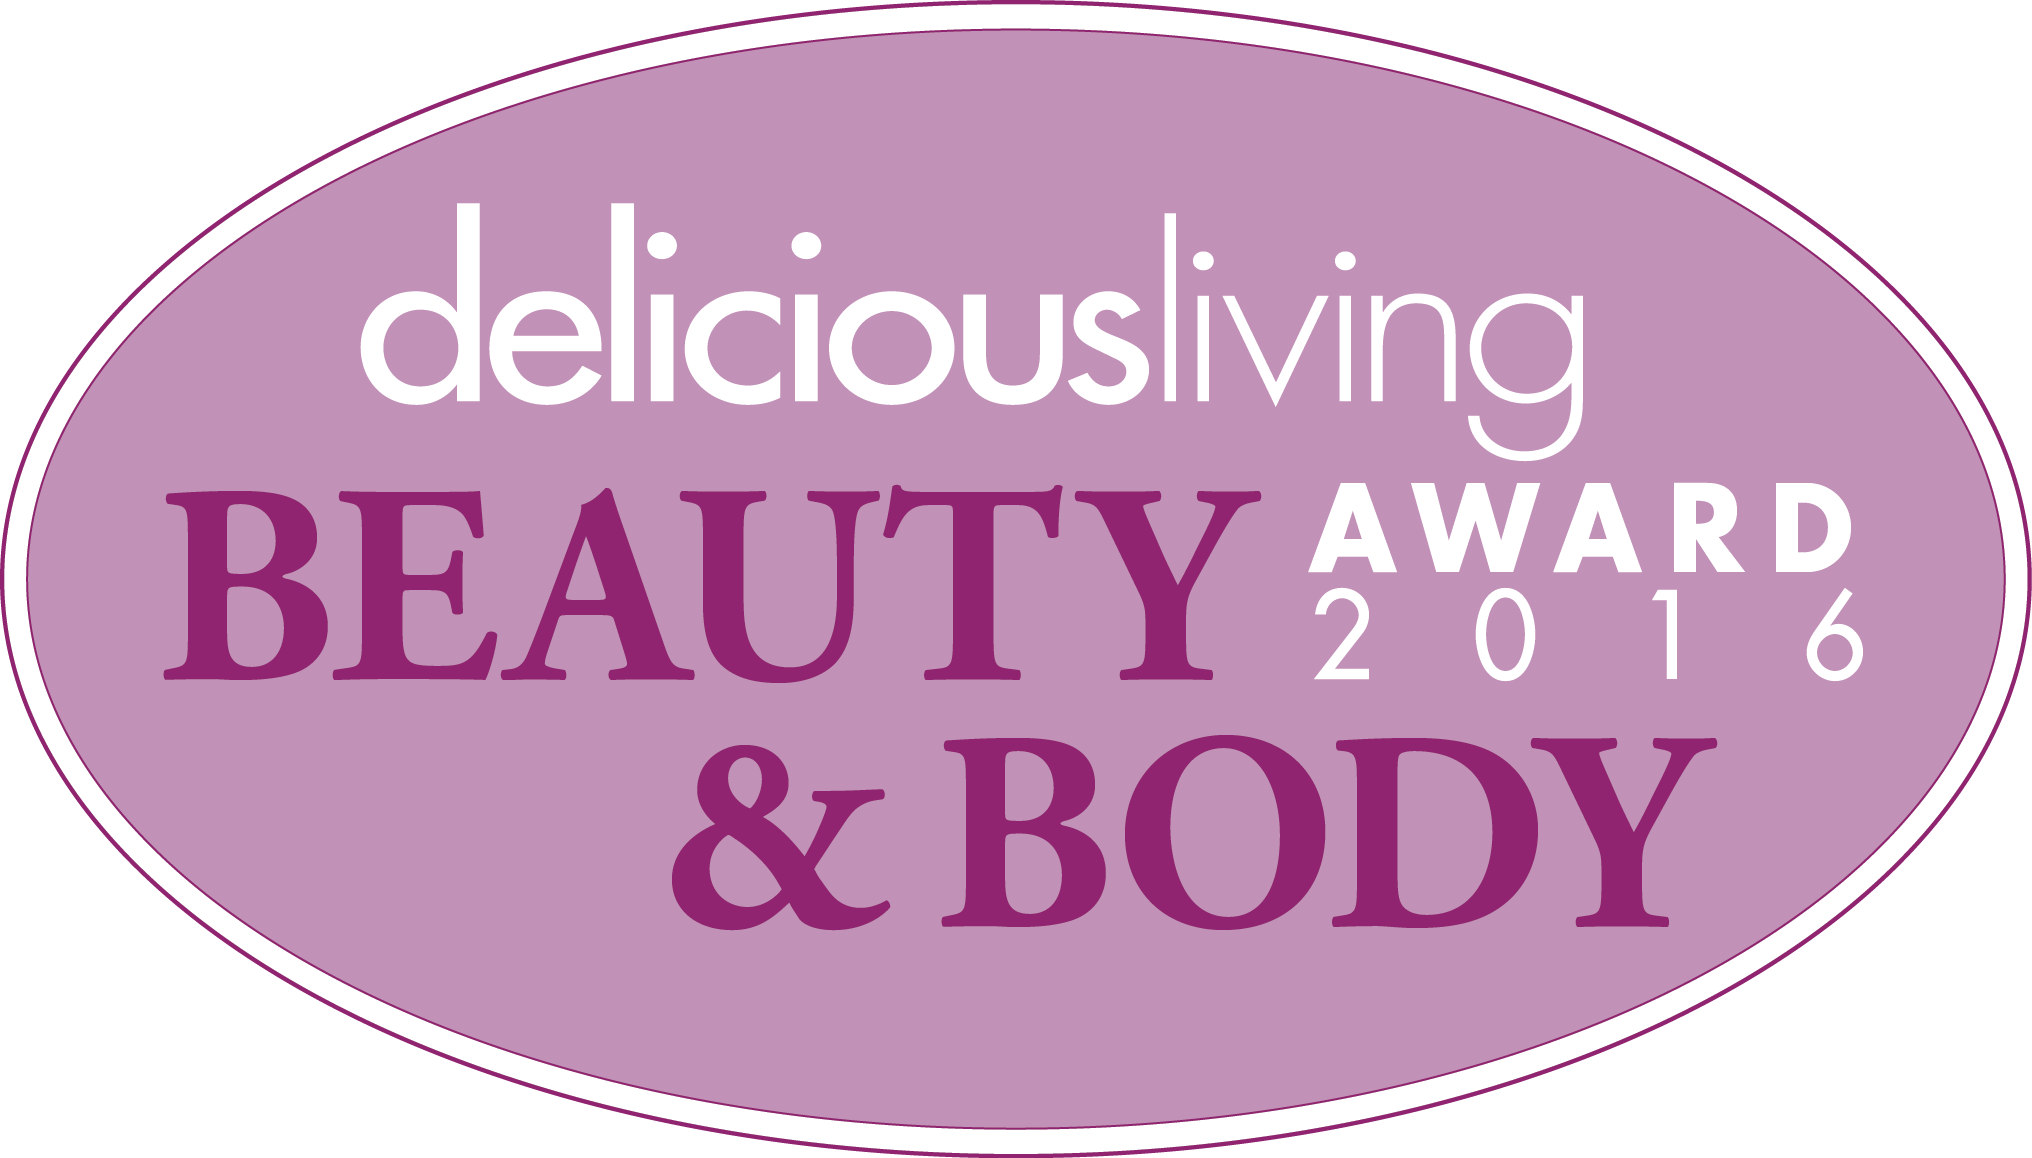 2016 deliciousliving Beauty and Body Award